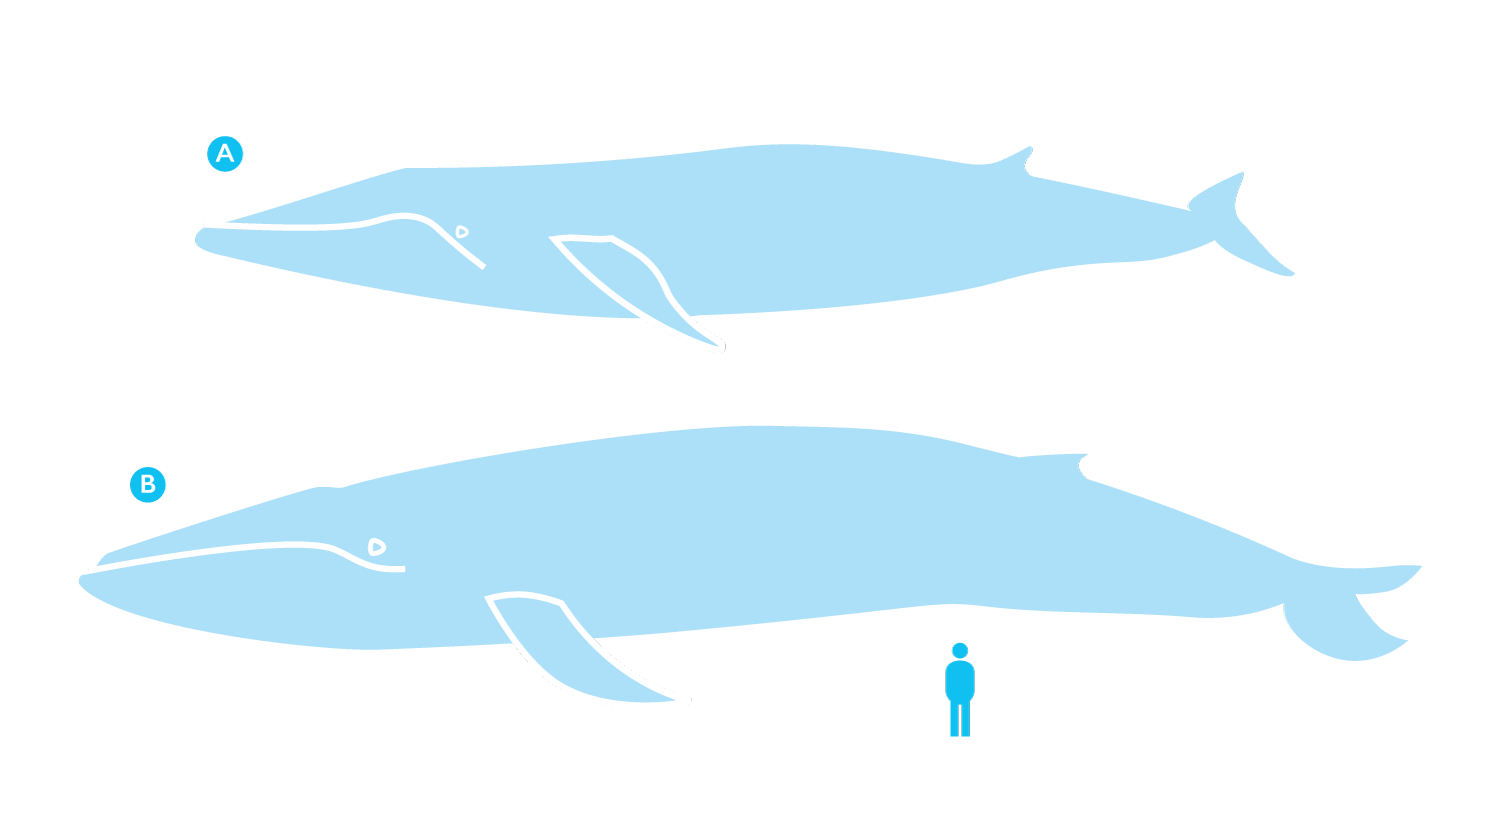 A)   Fin whale (   Balaenoptera physalus   ) &  B)    Blue whale (   Balaenoptera musculus   )